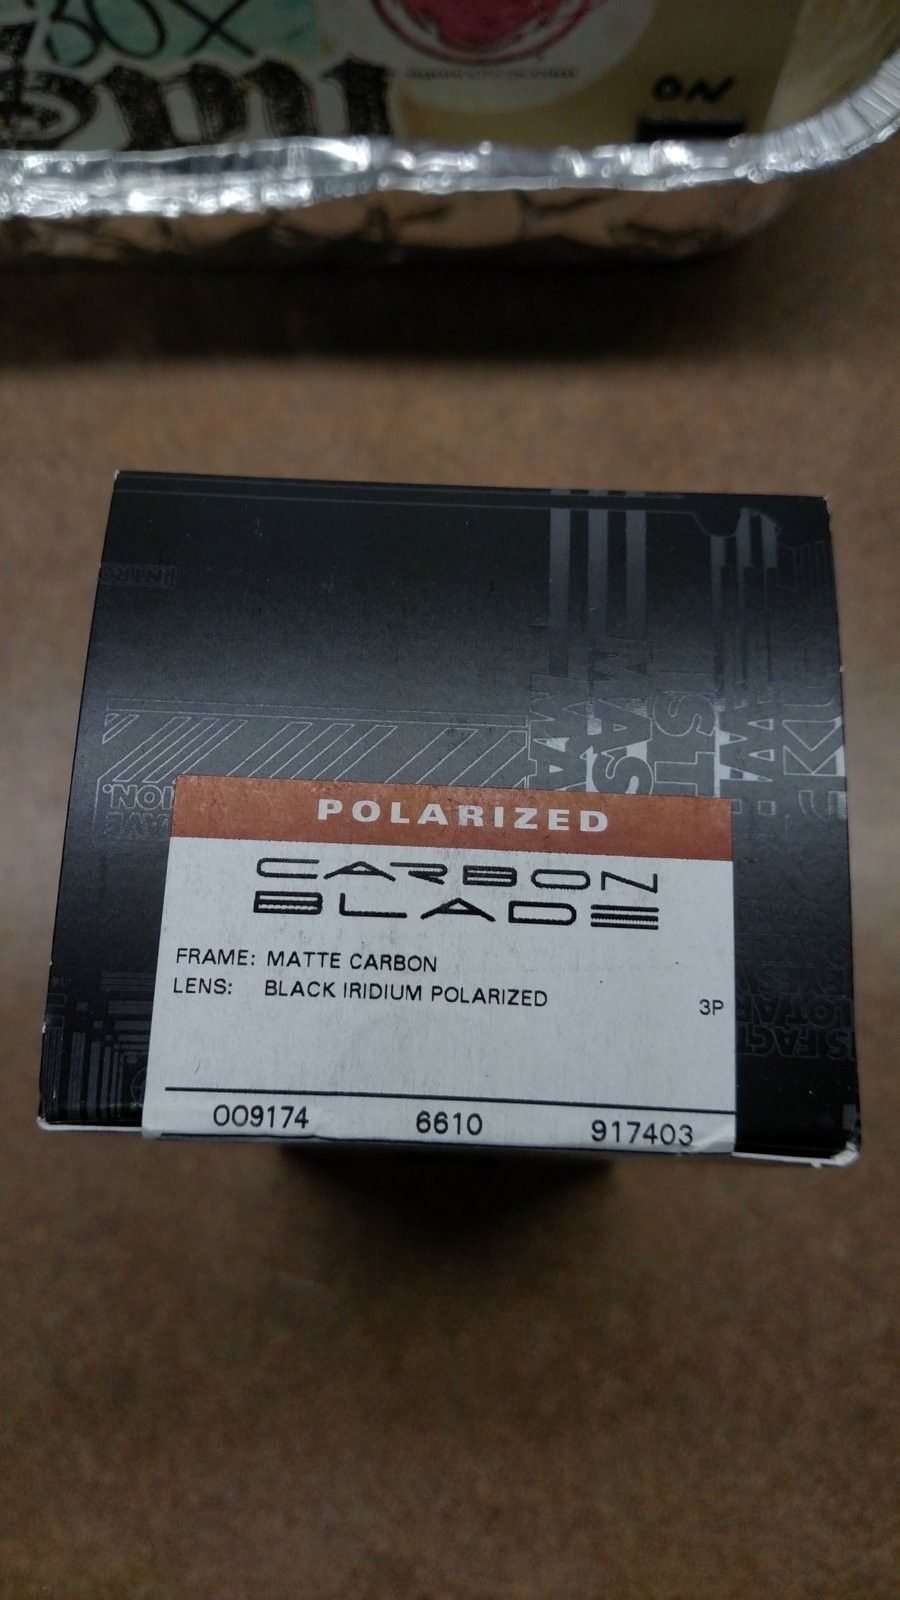 $5 box, papers, for Carbon Blade (Polarized). - IMG_20160212_130829720.jpg